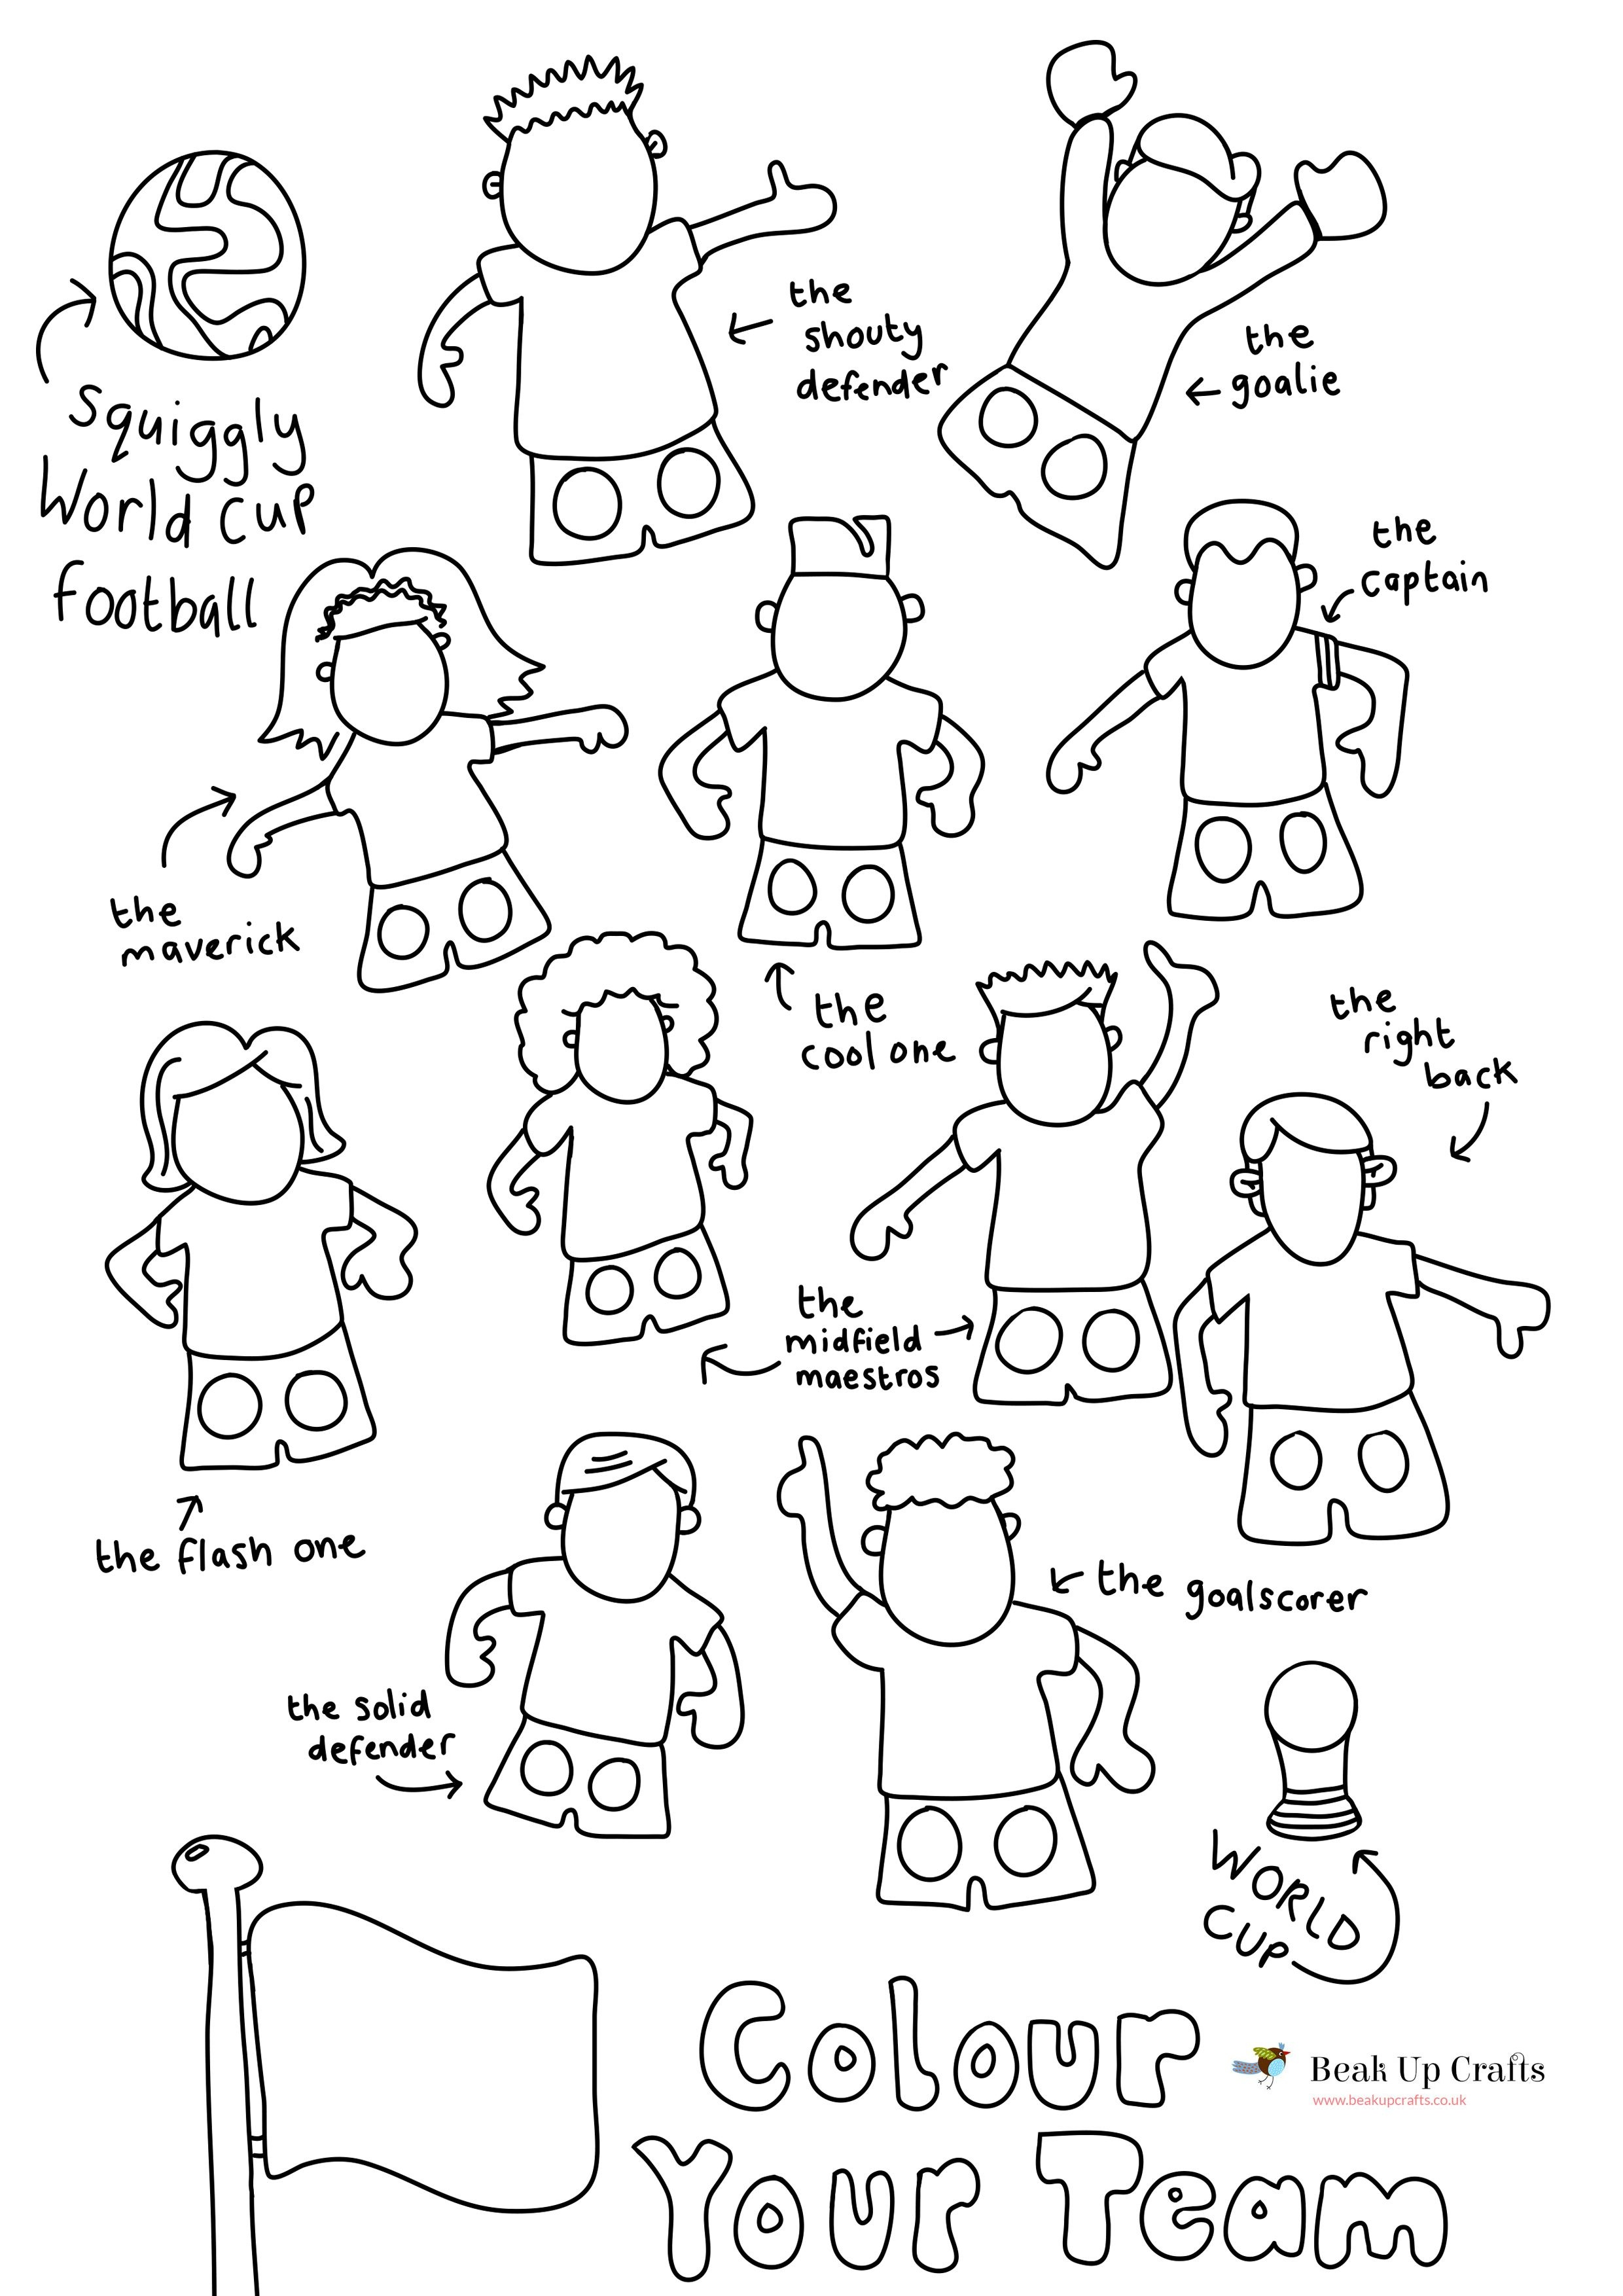 Free Printable - World Cup Football/soccer Player Paper Finger - Free Printable Finger Puppet Templates